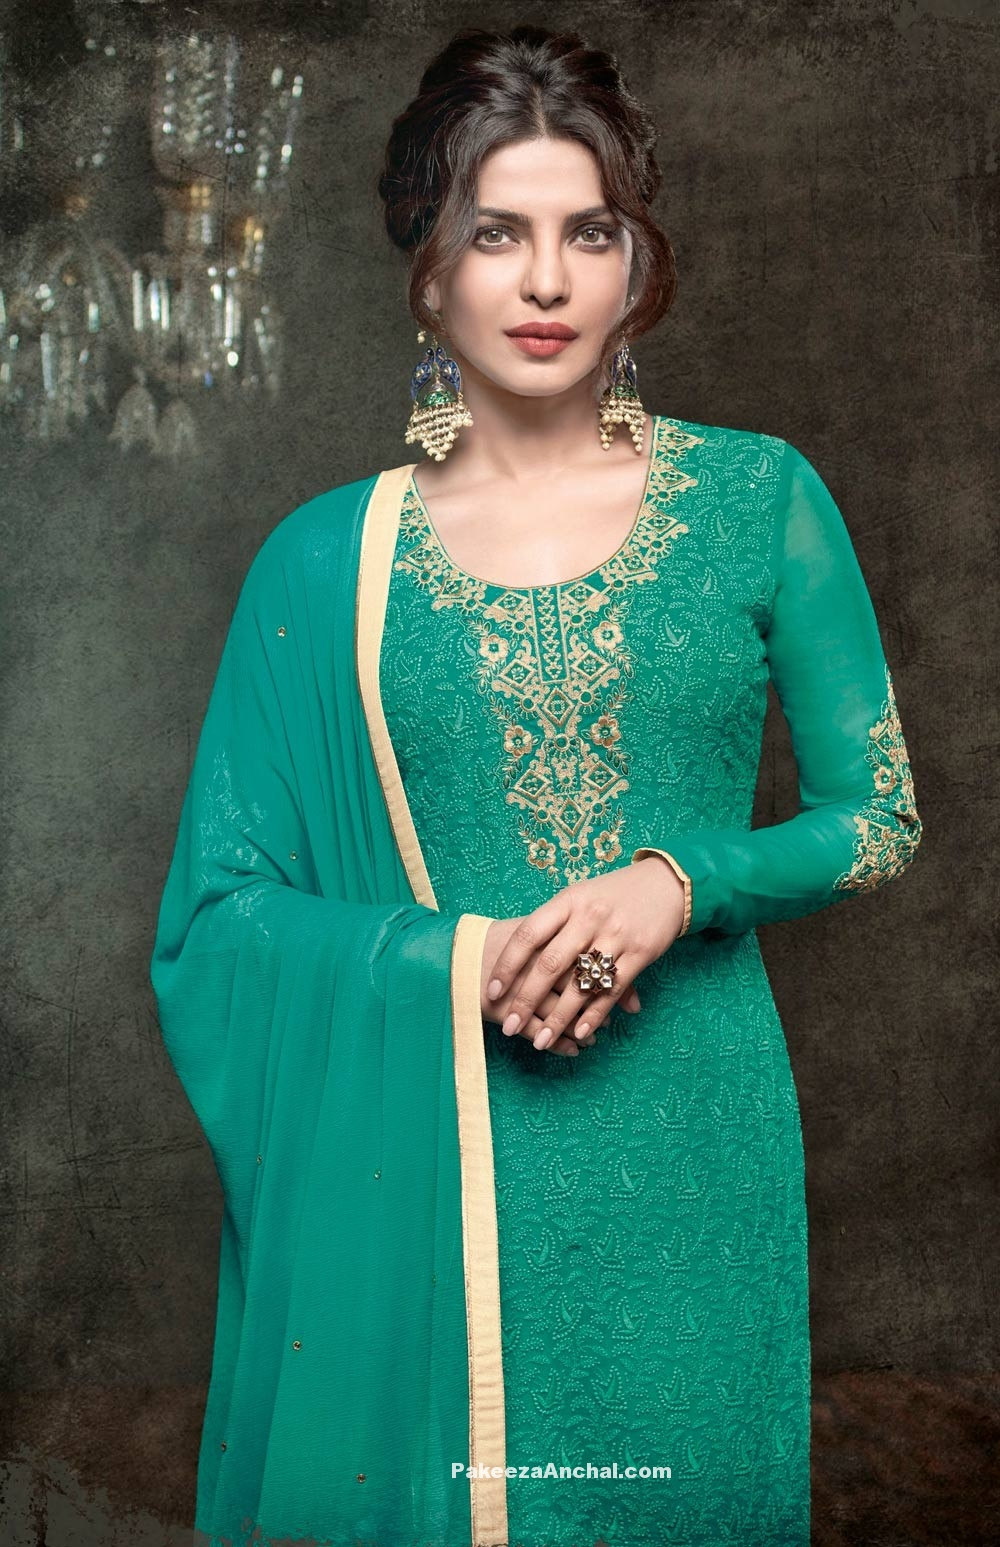 Priyanka Chopra in Salwar kameez Collection 2017 www.PakeezaAnchal.com